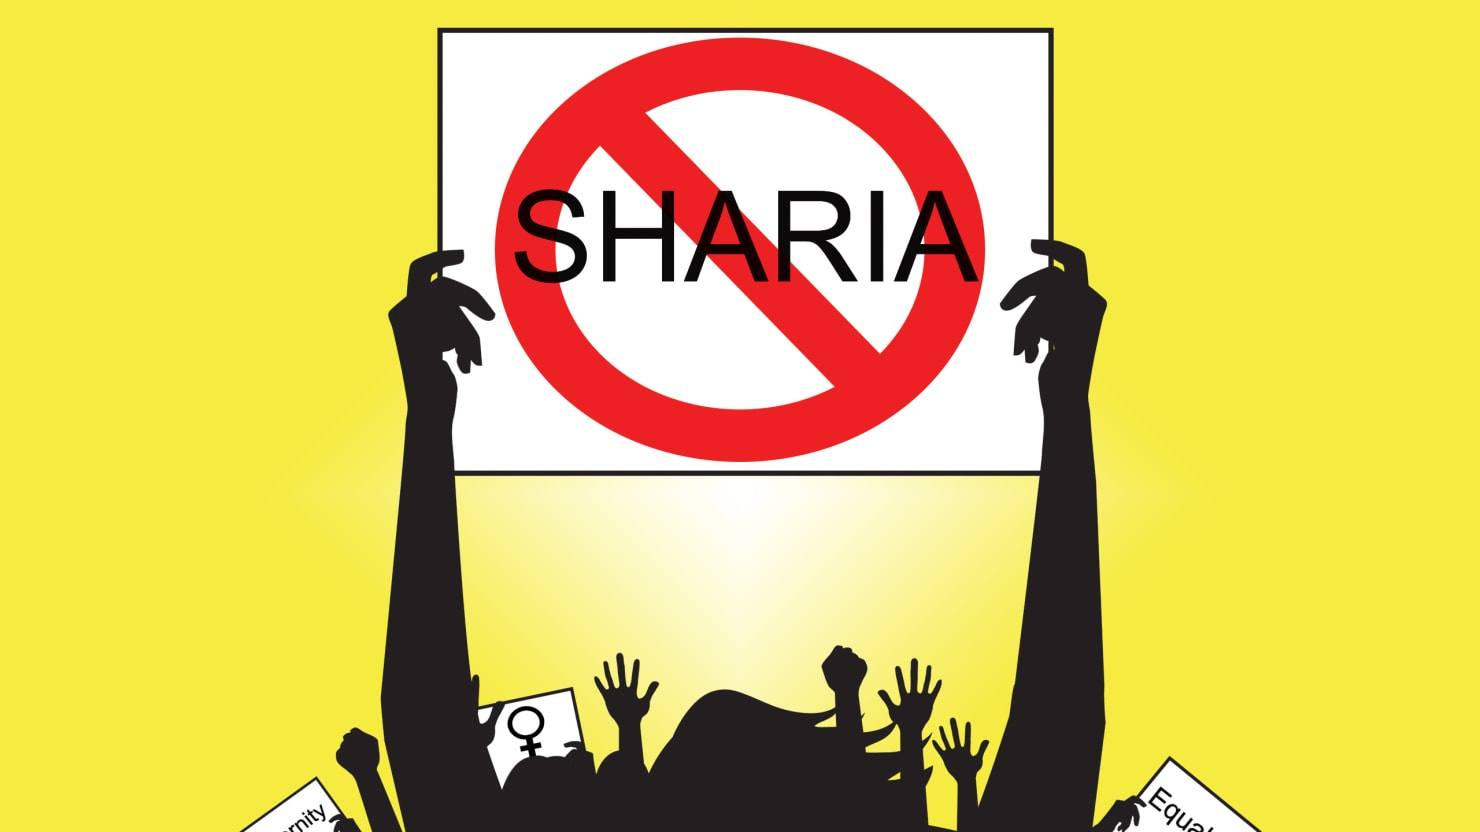 On This 'Day Without a Woman,' Don't Leave Women Oppressed by Sharia Law Behind